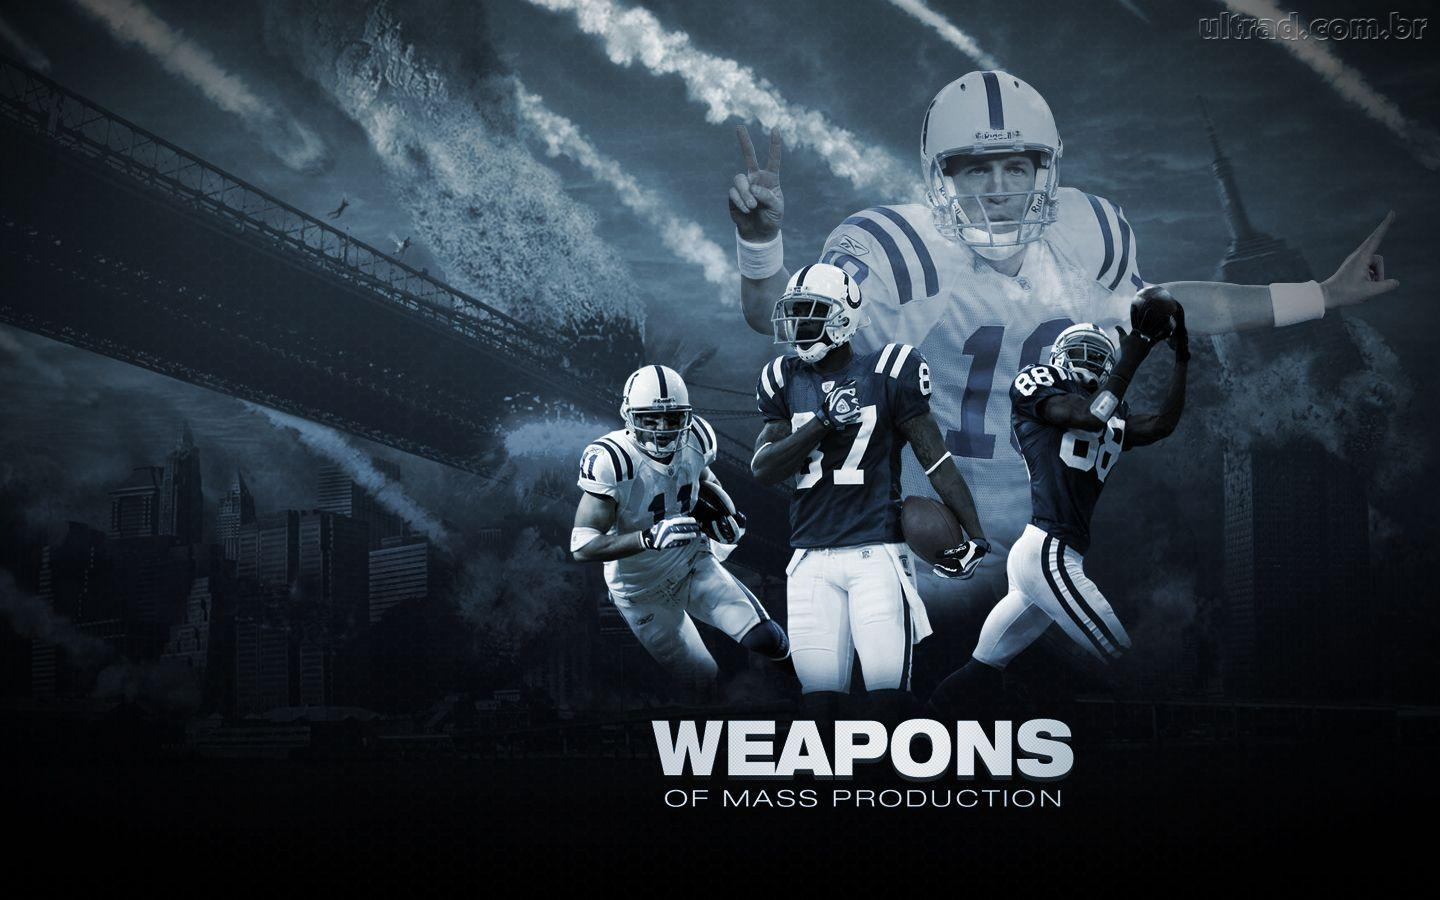 More Indianapolis Colts Wallpapers 4 | Chainimage